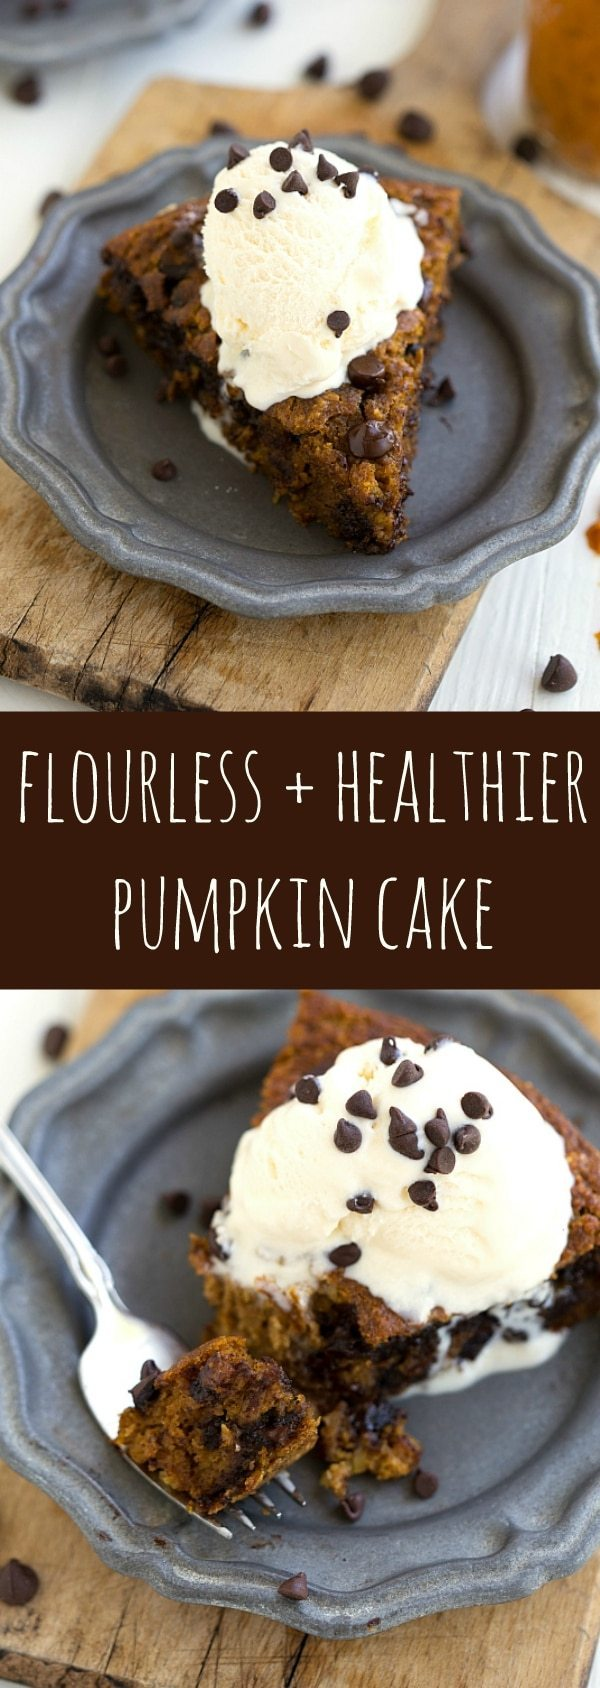 The BEST healthier and flourless pumpkin cake -- no flour, butter, and much lower sugar. Gluten free recipe